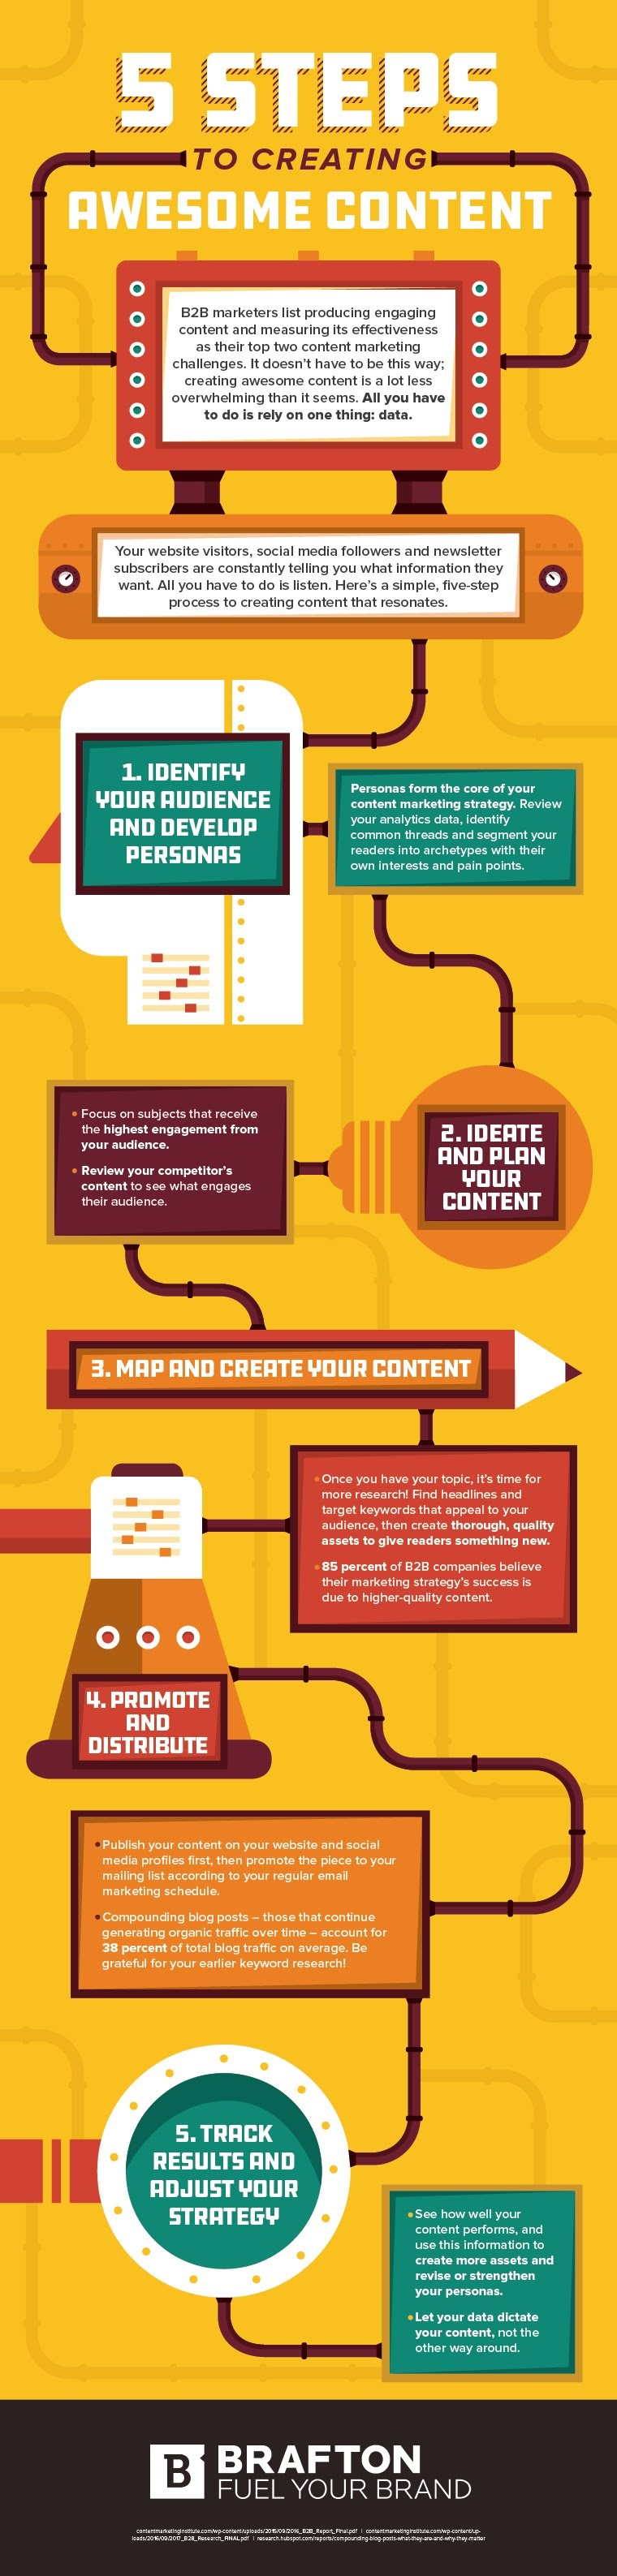 How to Create Awesome Content in 5 Easy Steps - #Infographic